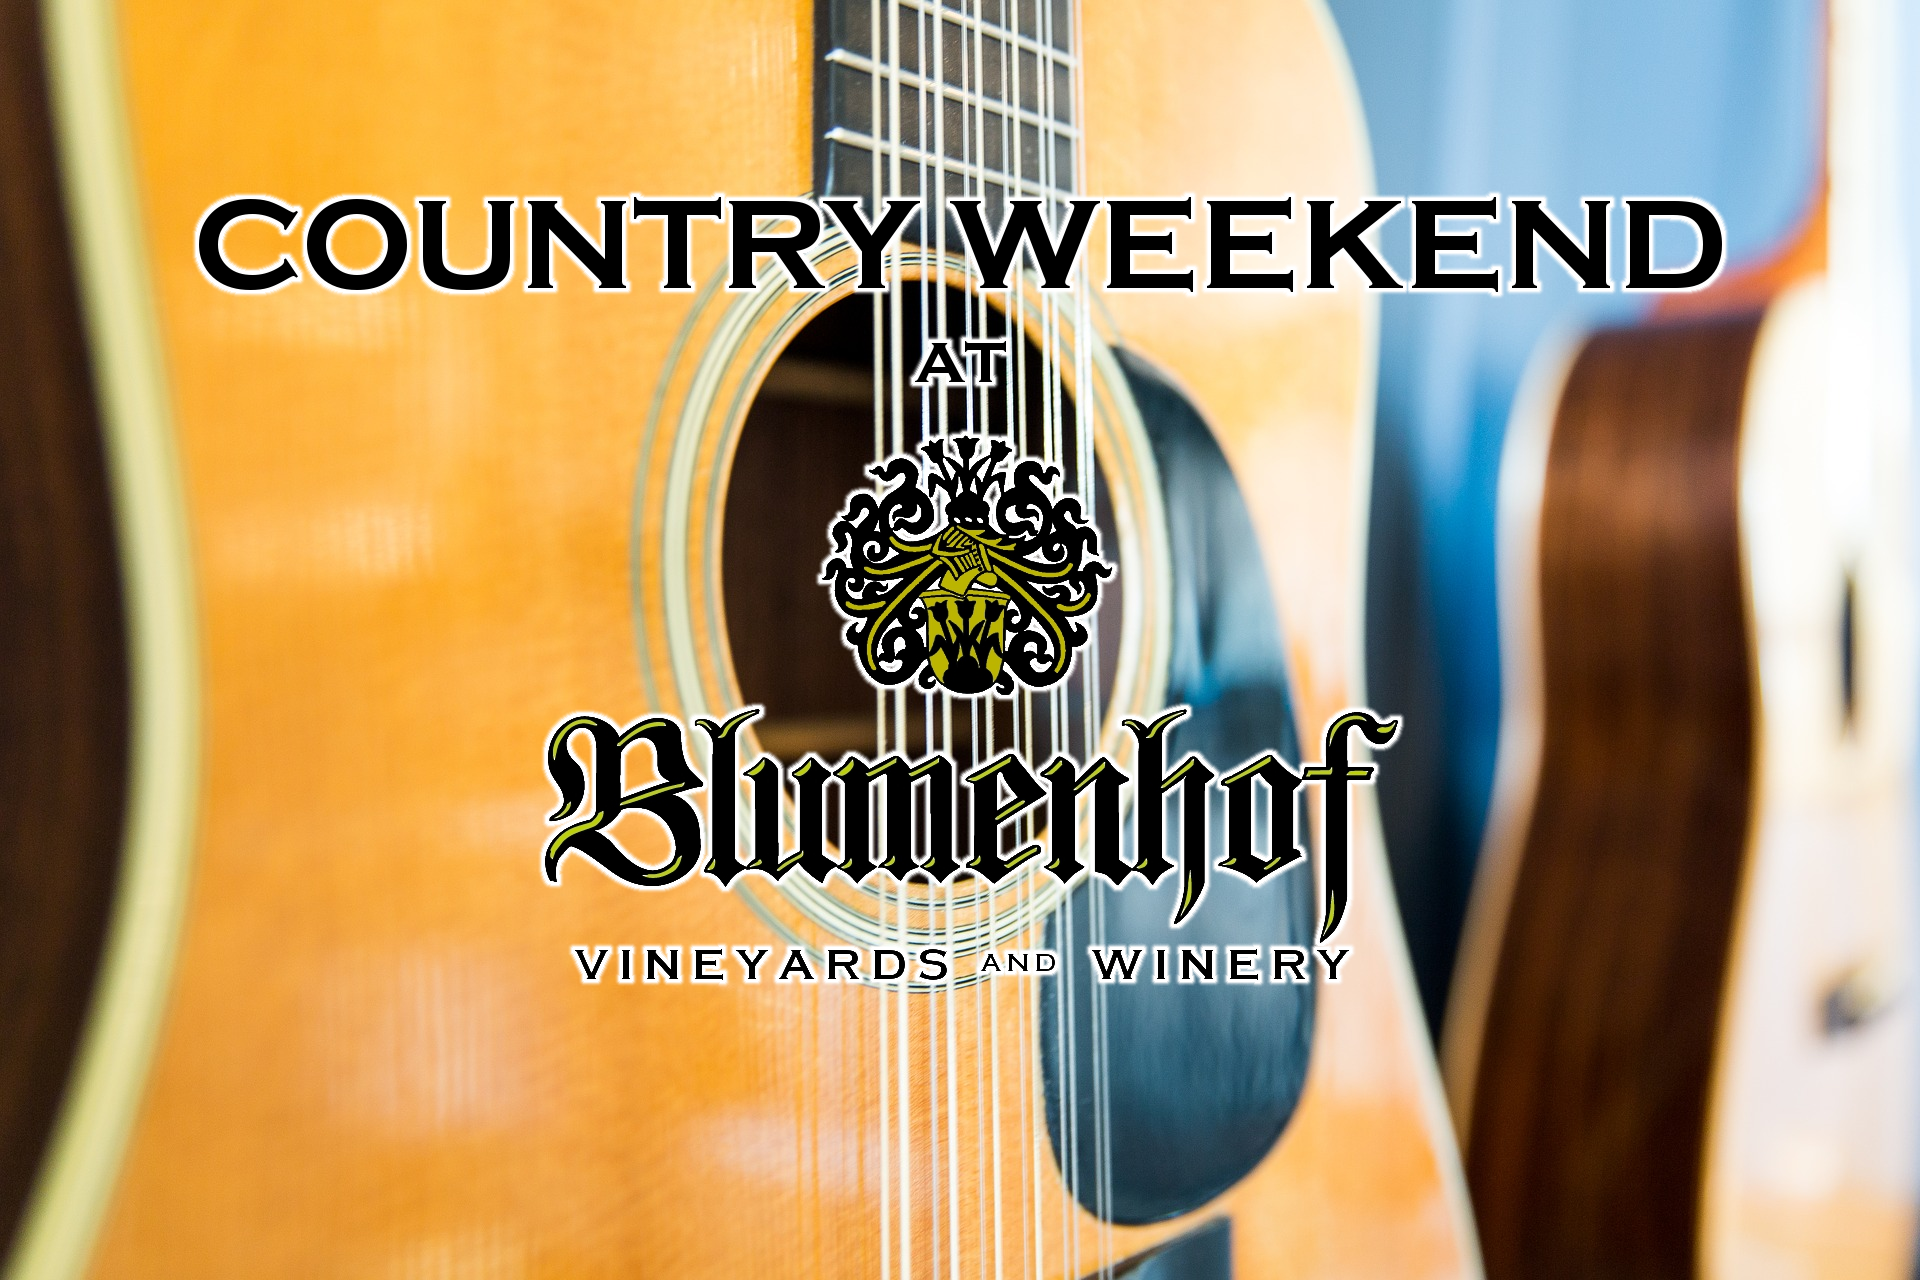 Country Weekend at Blumenhof Winery